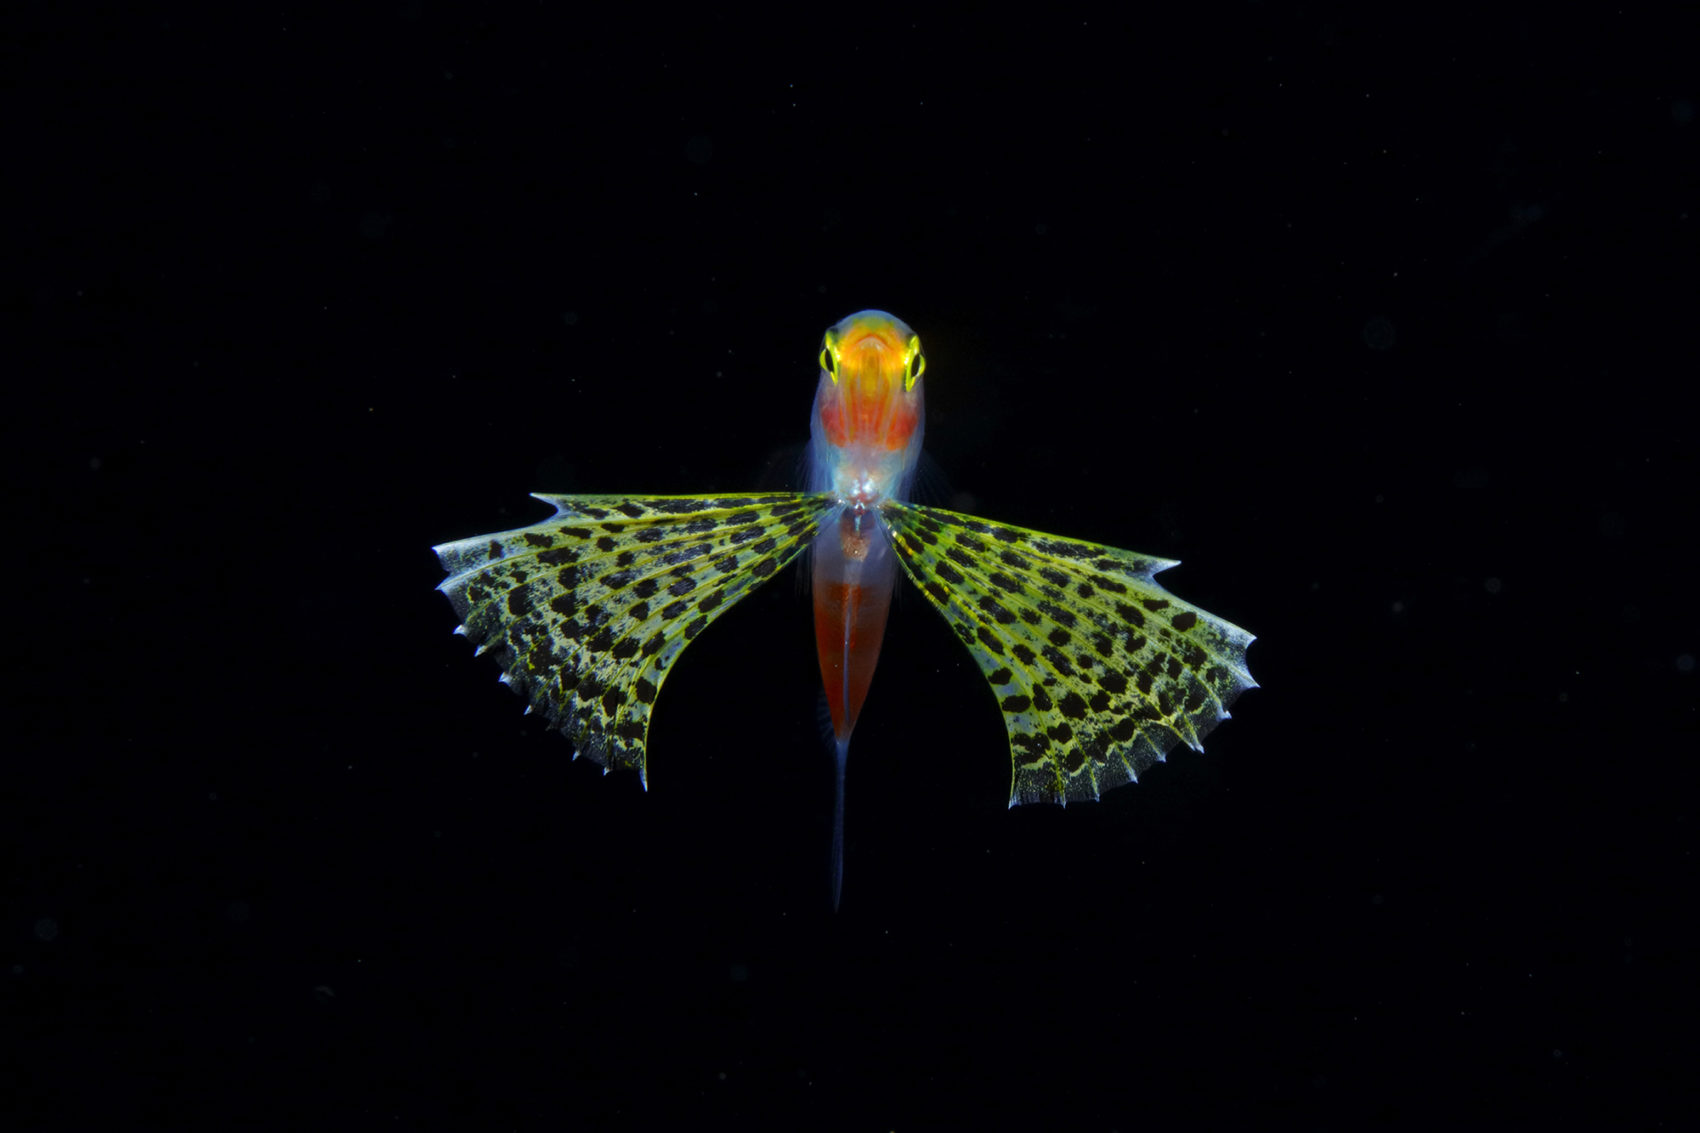 Jewels in the Night Sea RyoMinemizu 1 Luminous Plankton Captured in the Dark Waters of the Osezaki Sea